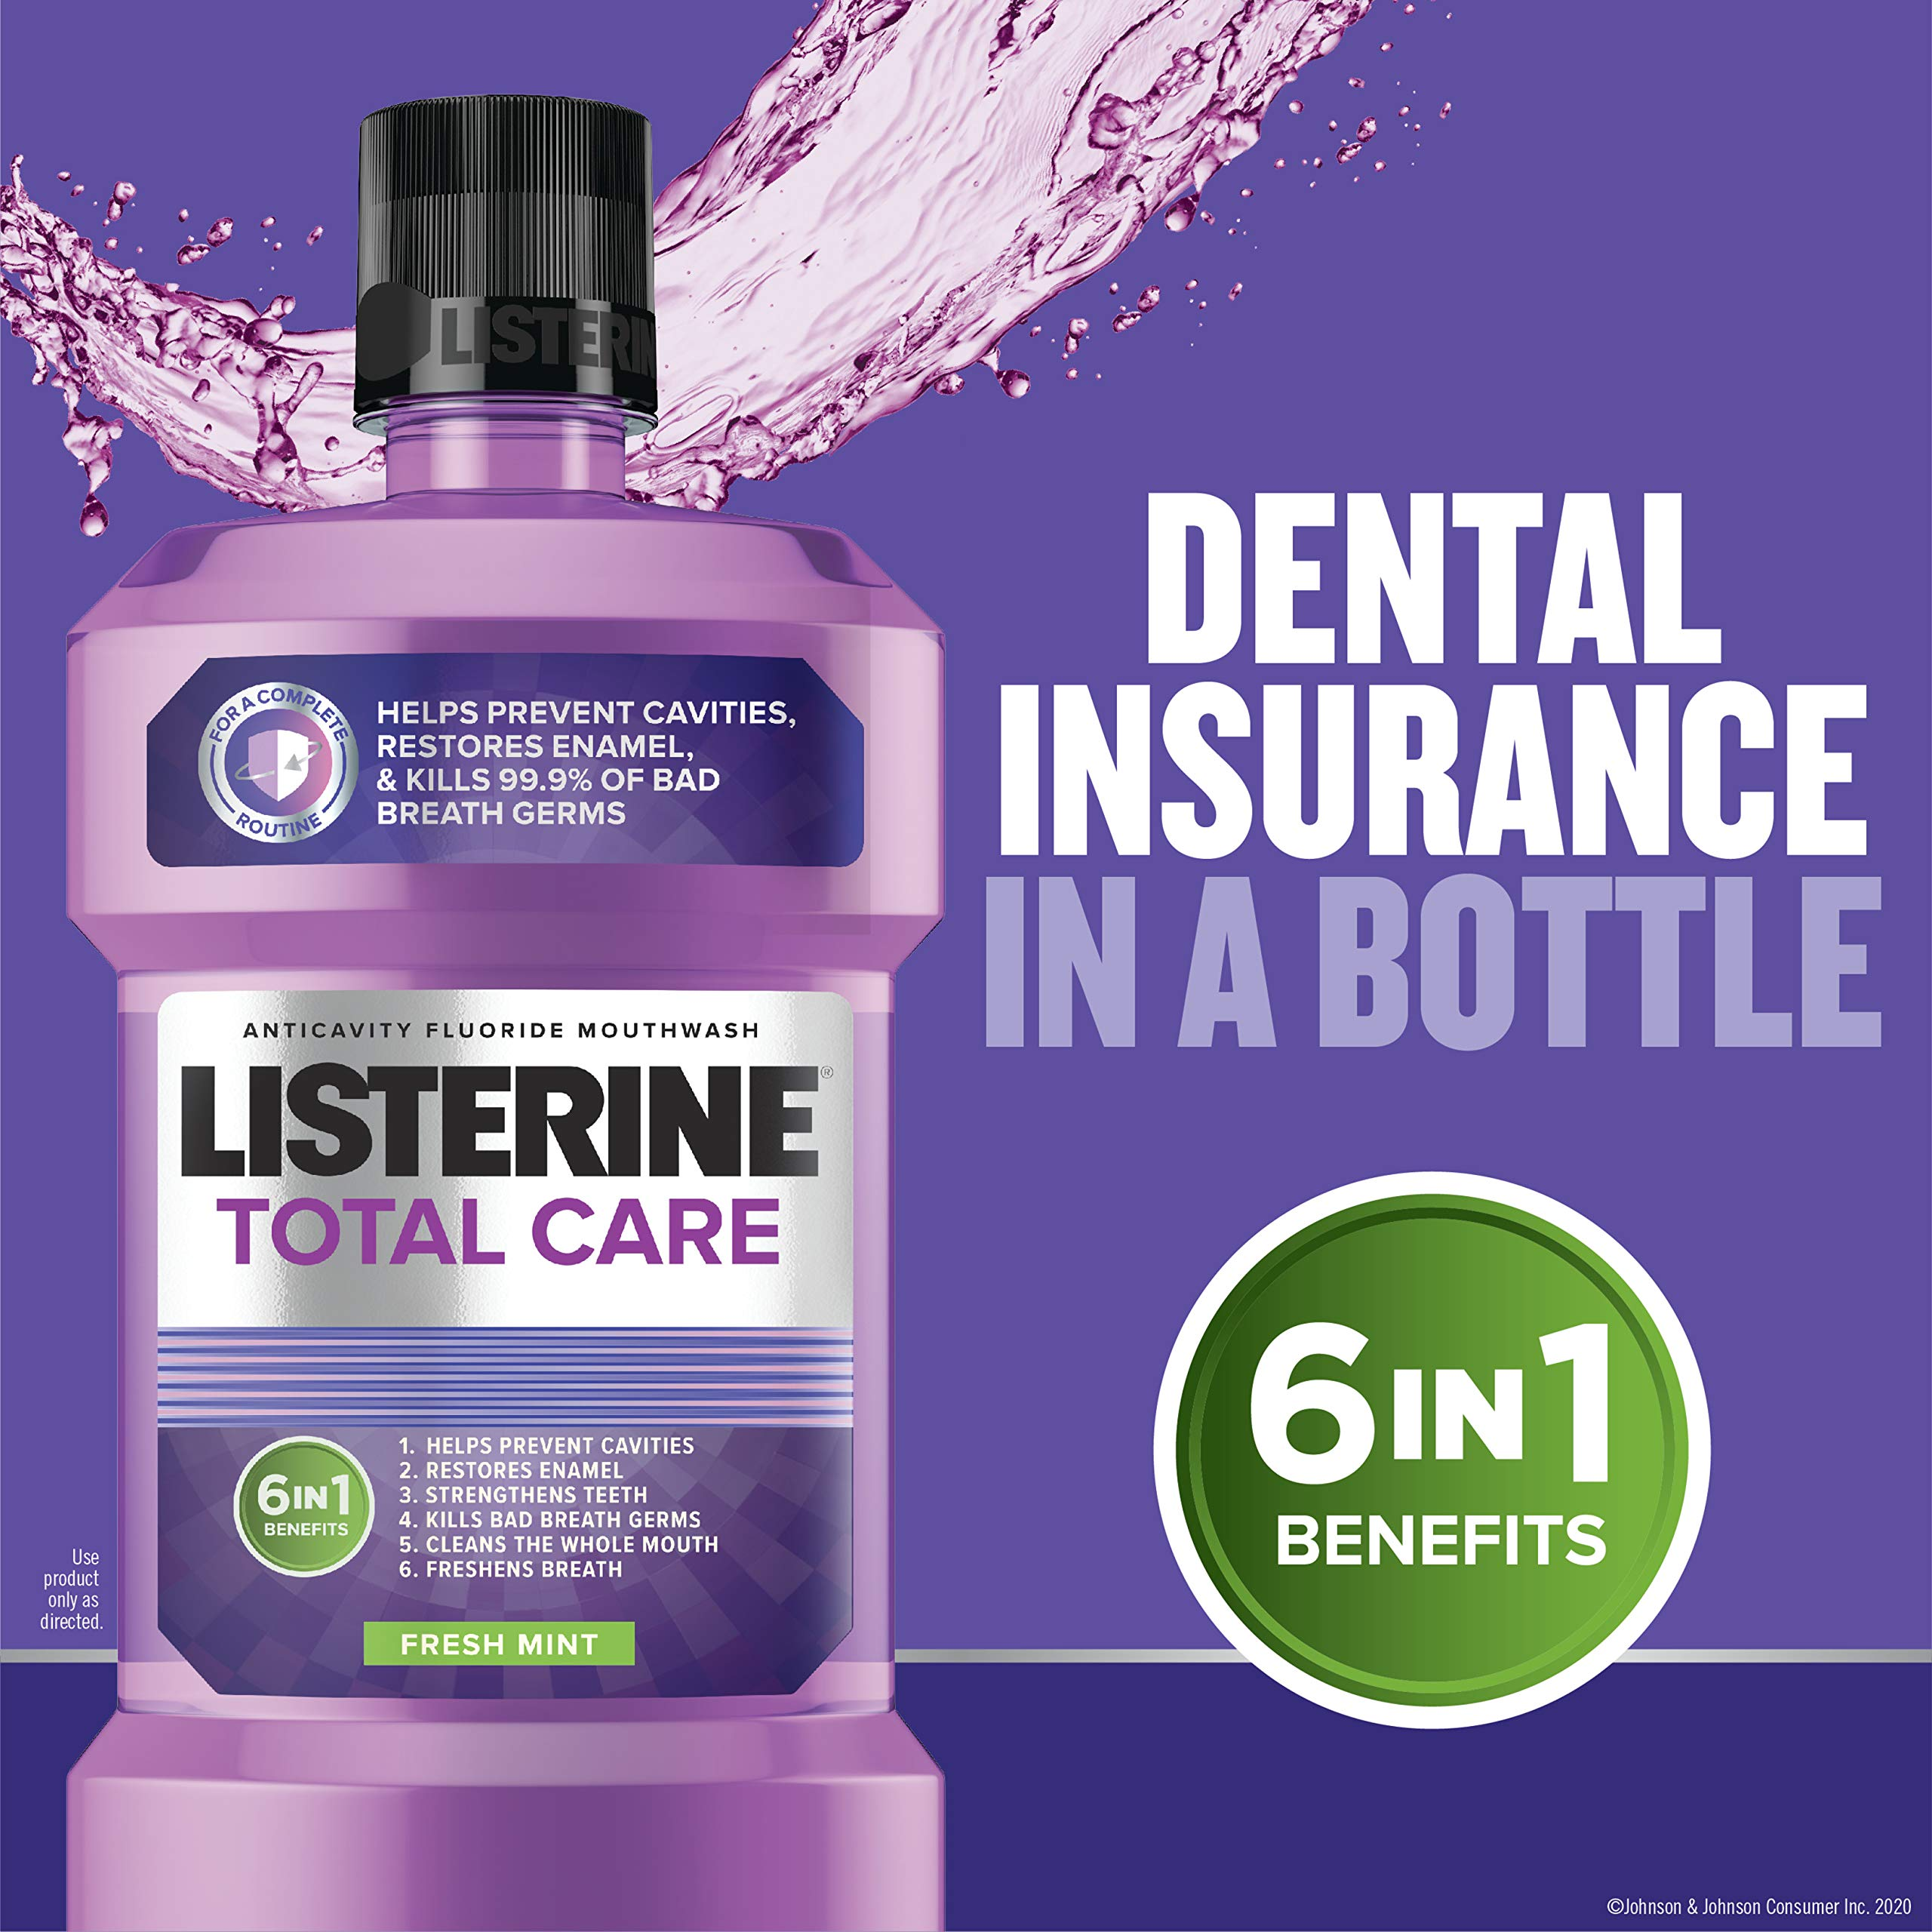 Listerine Total Care Anticavity Fluoride Mouthwash, 6 Benefit Mouthwash to Help Kill 99% of Germs that Cause Bad Breath, Prevent Cavities, Strengthen Enamel & More, Fresh Mint Flavor, 1 L